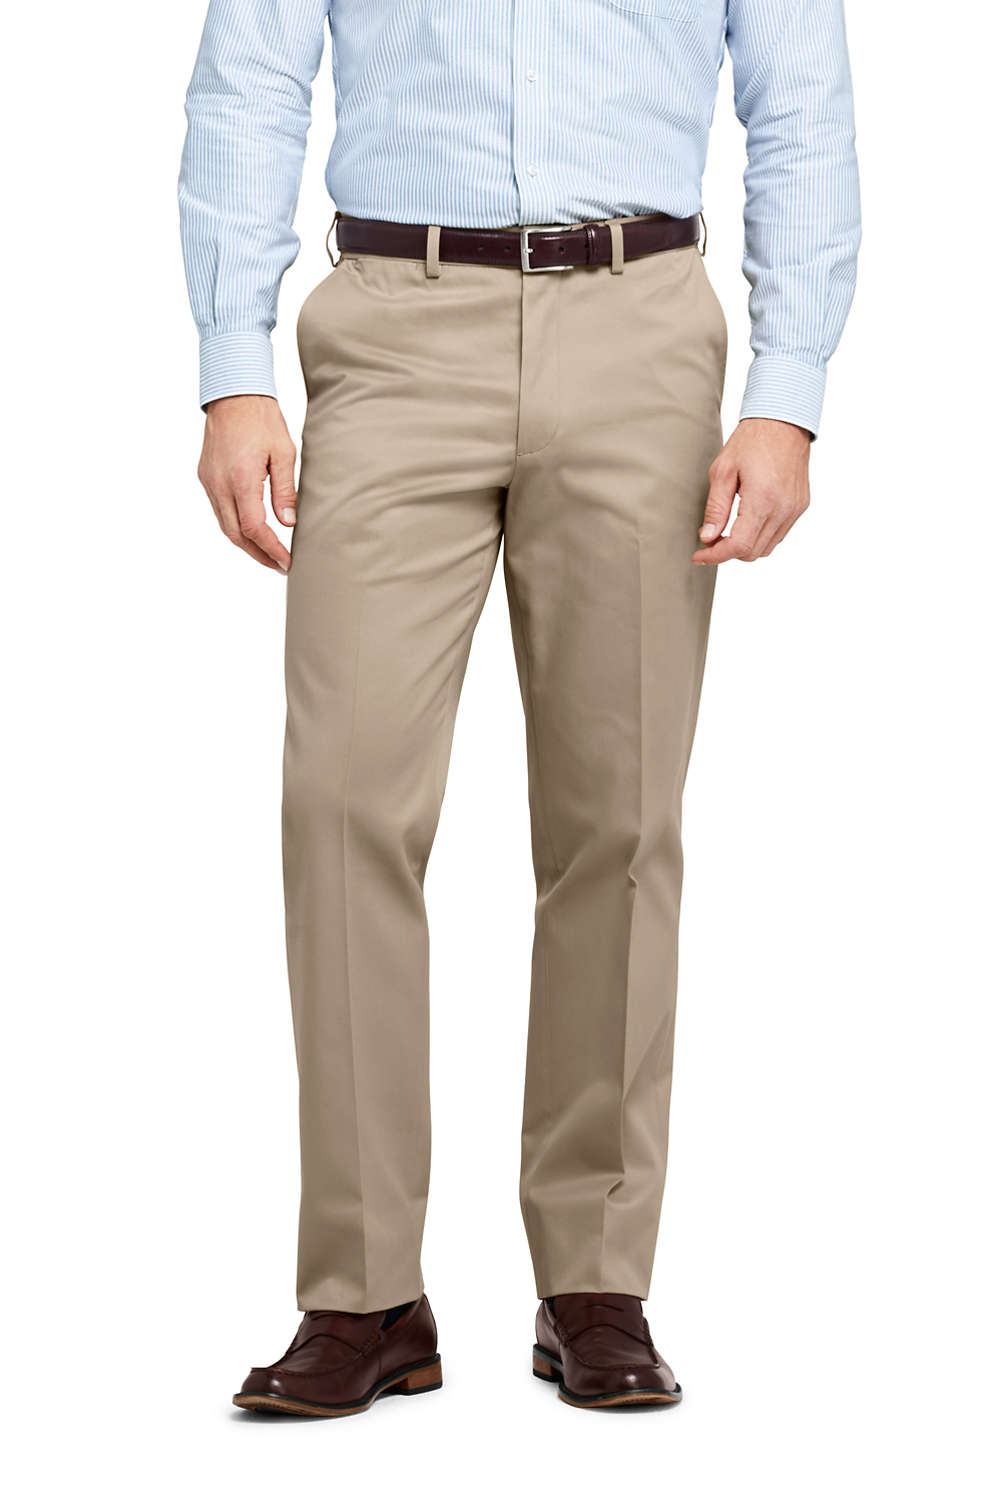 c531ad46671b Men s Comfort Waist No Iron Twill Dress Trousers from Lands  End